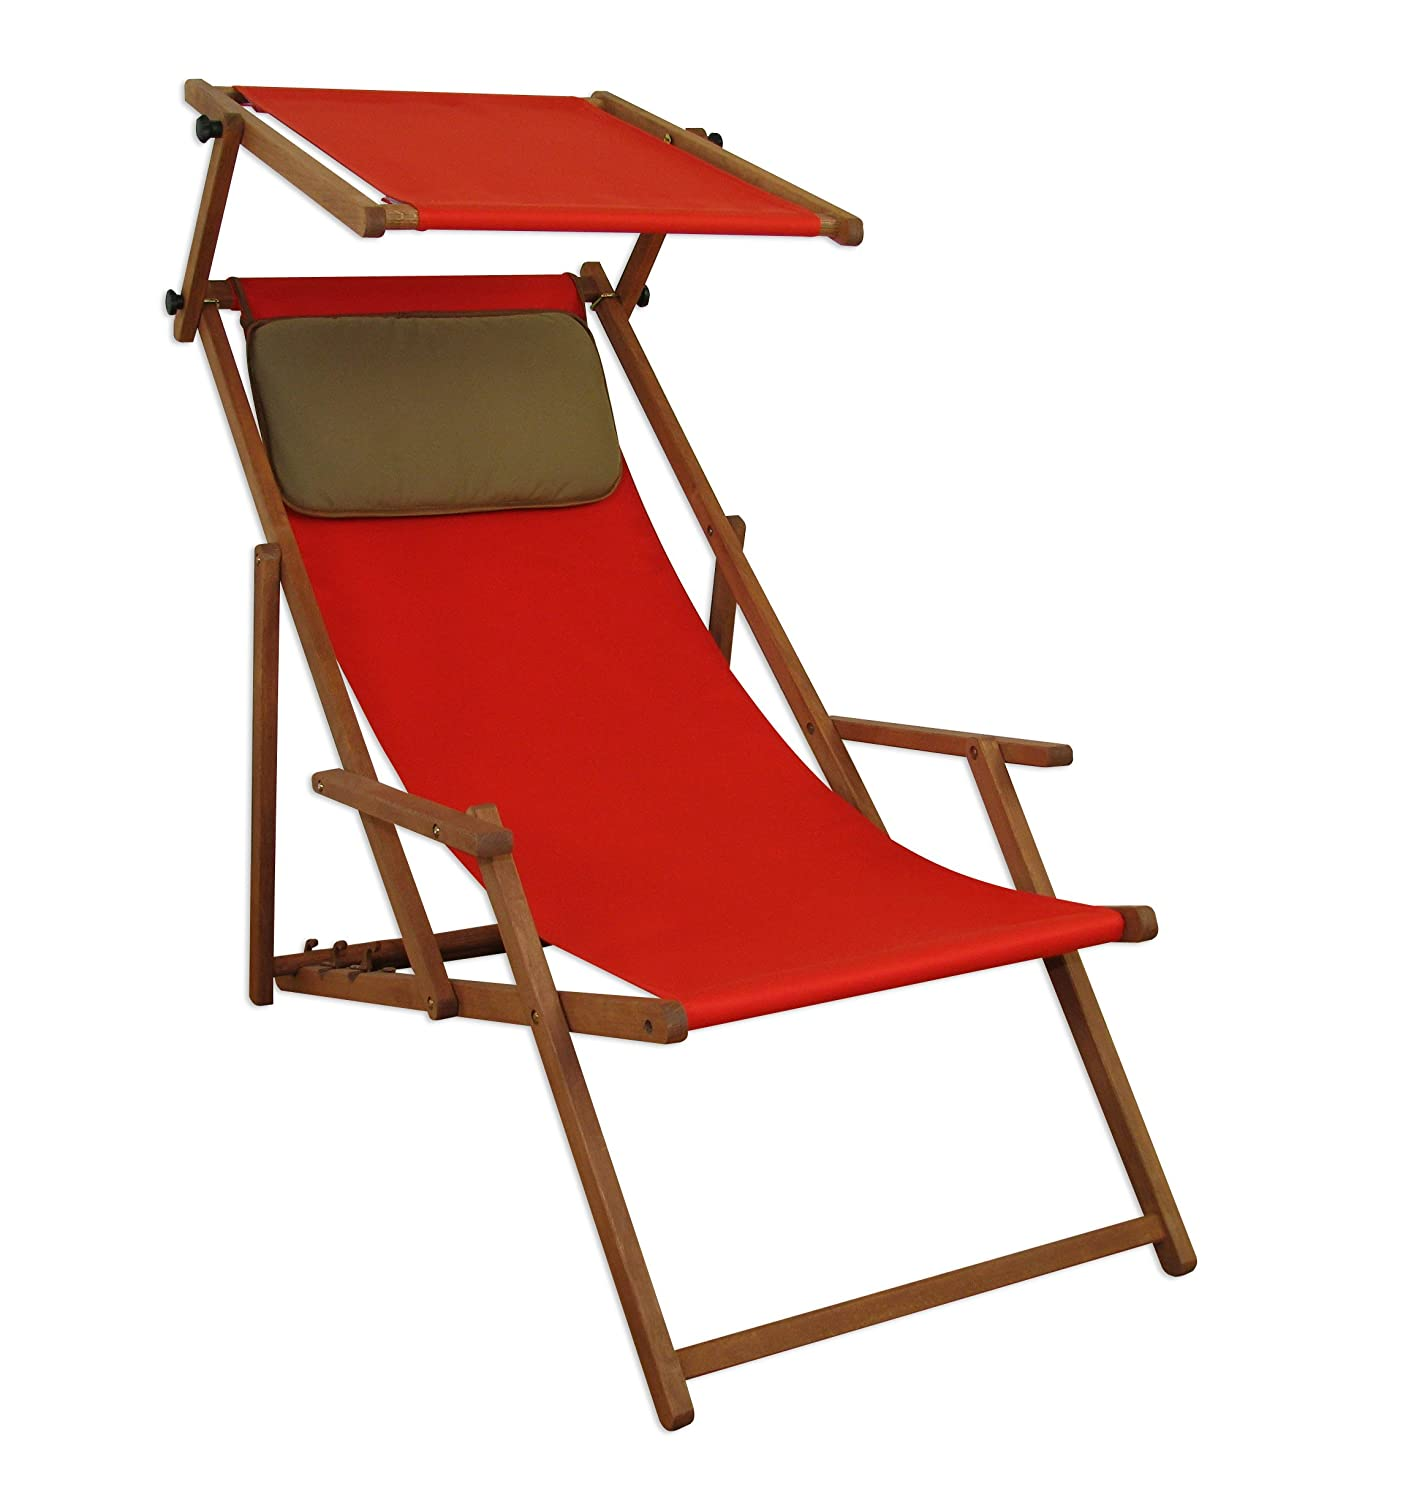 sonnenliege gartenliege deckchair saunaliege mit dach braun g nstig kaufen. Black Bedroom Furniture Sets. Home Design Ideas